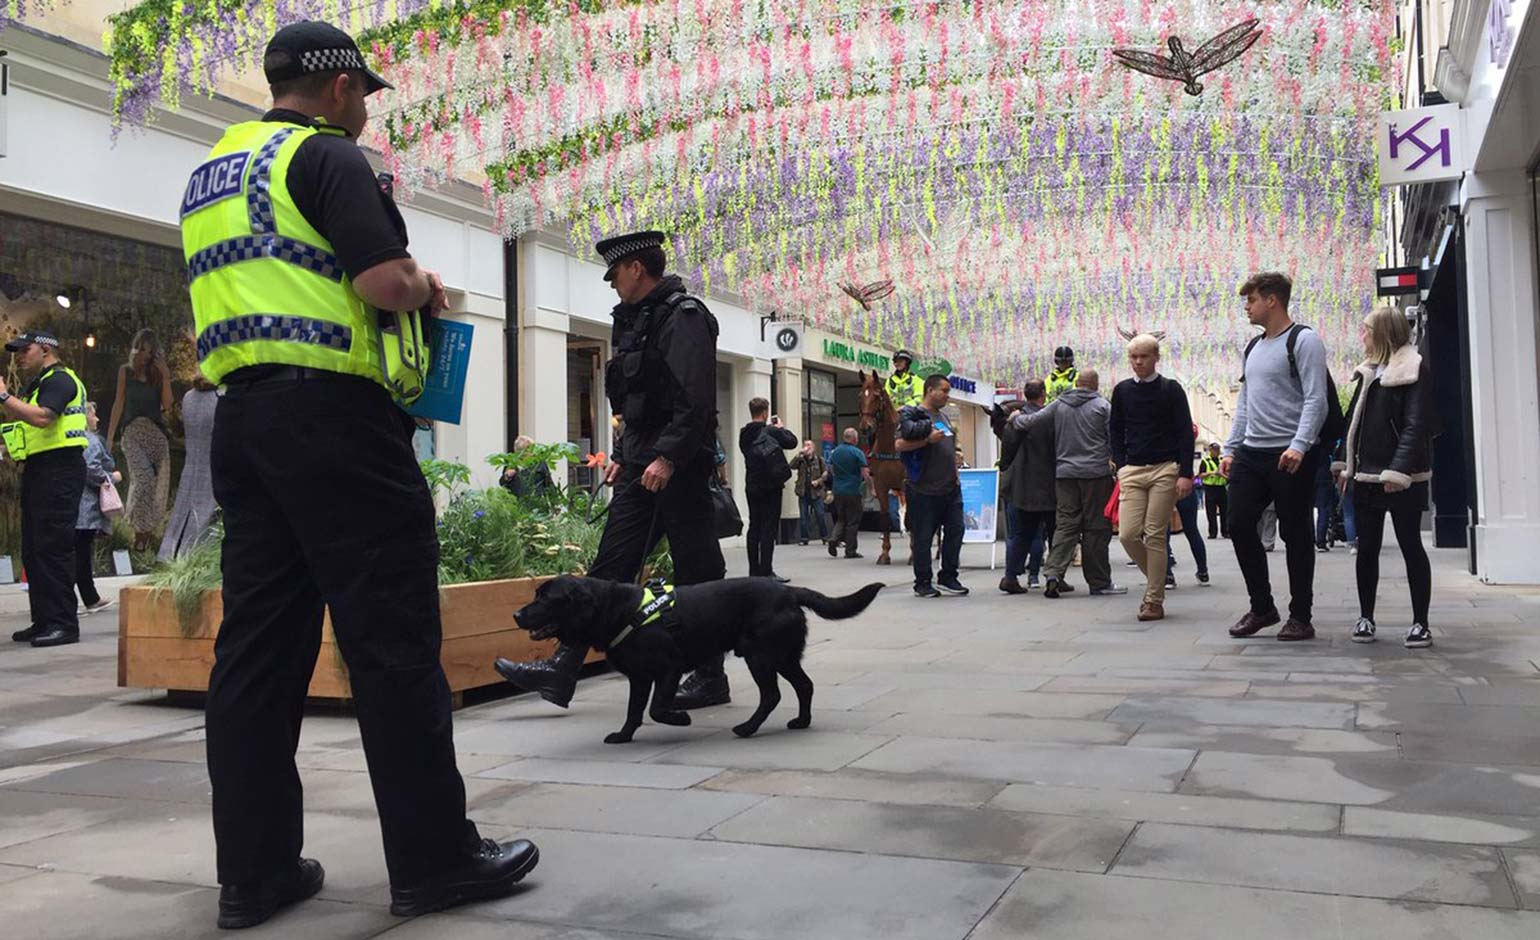 Avon and Somerset Police launch new tactic to help disrupt criminal activity | Bath Echo